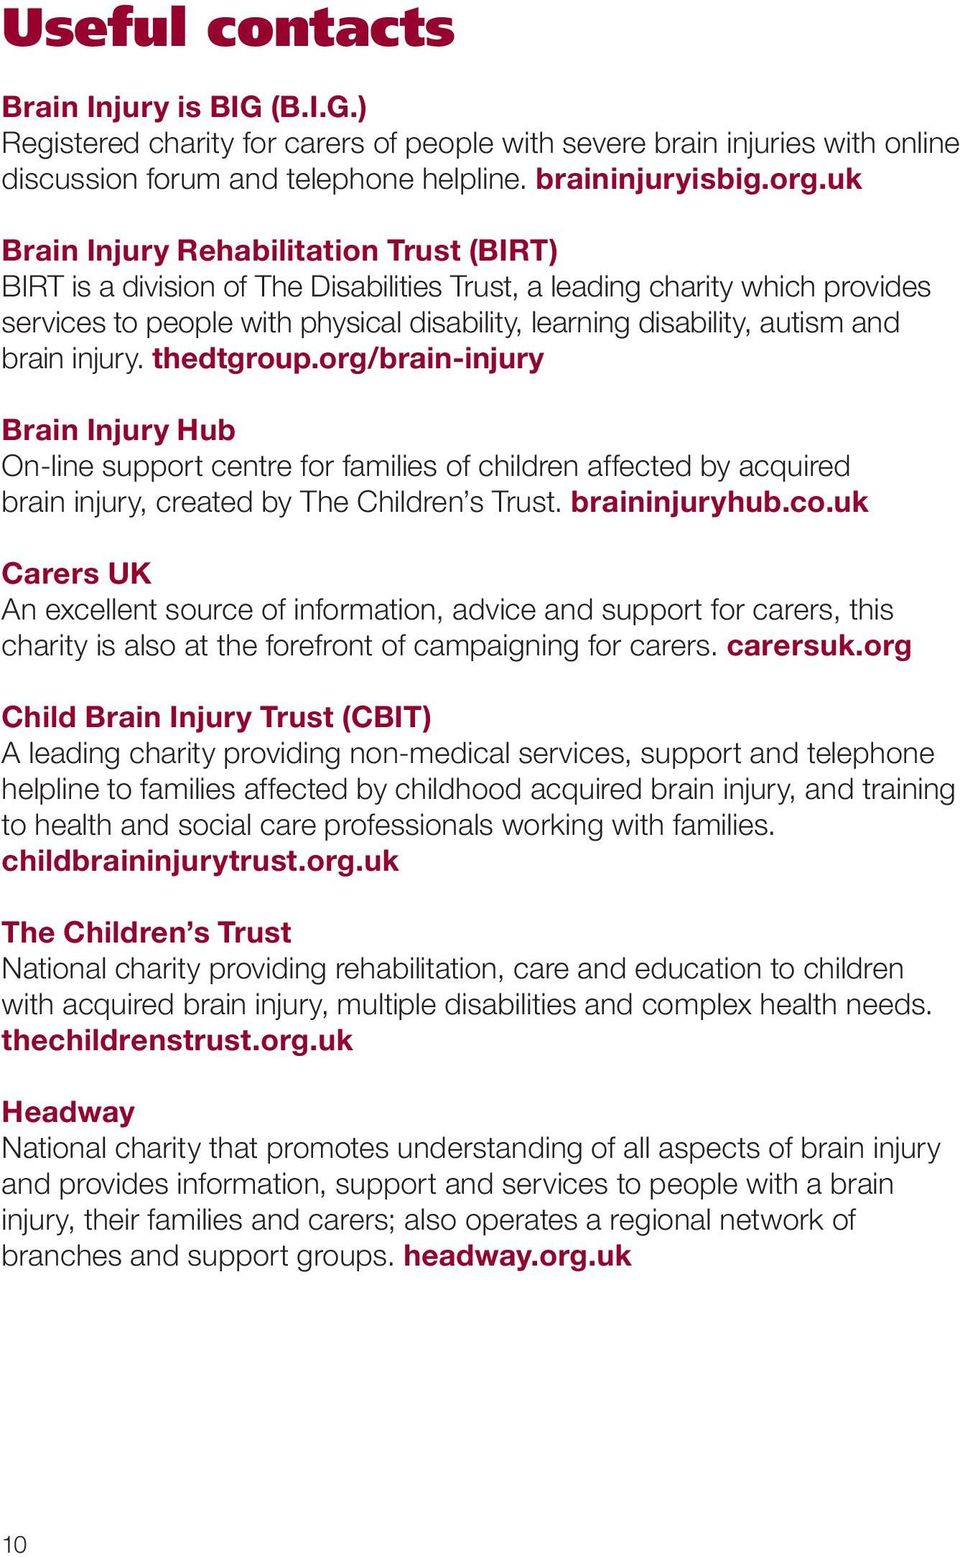 brain injury. thedtgroup.org/brain-injury Brain Injury Hub On-line support centre for families of children affected by acquired brain injury, created by The Children s Trust. braininjuryhub.co.